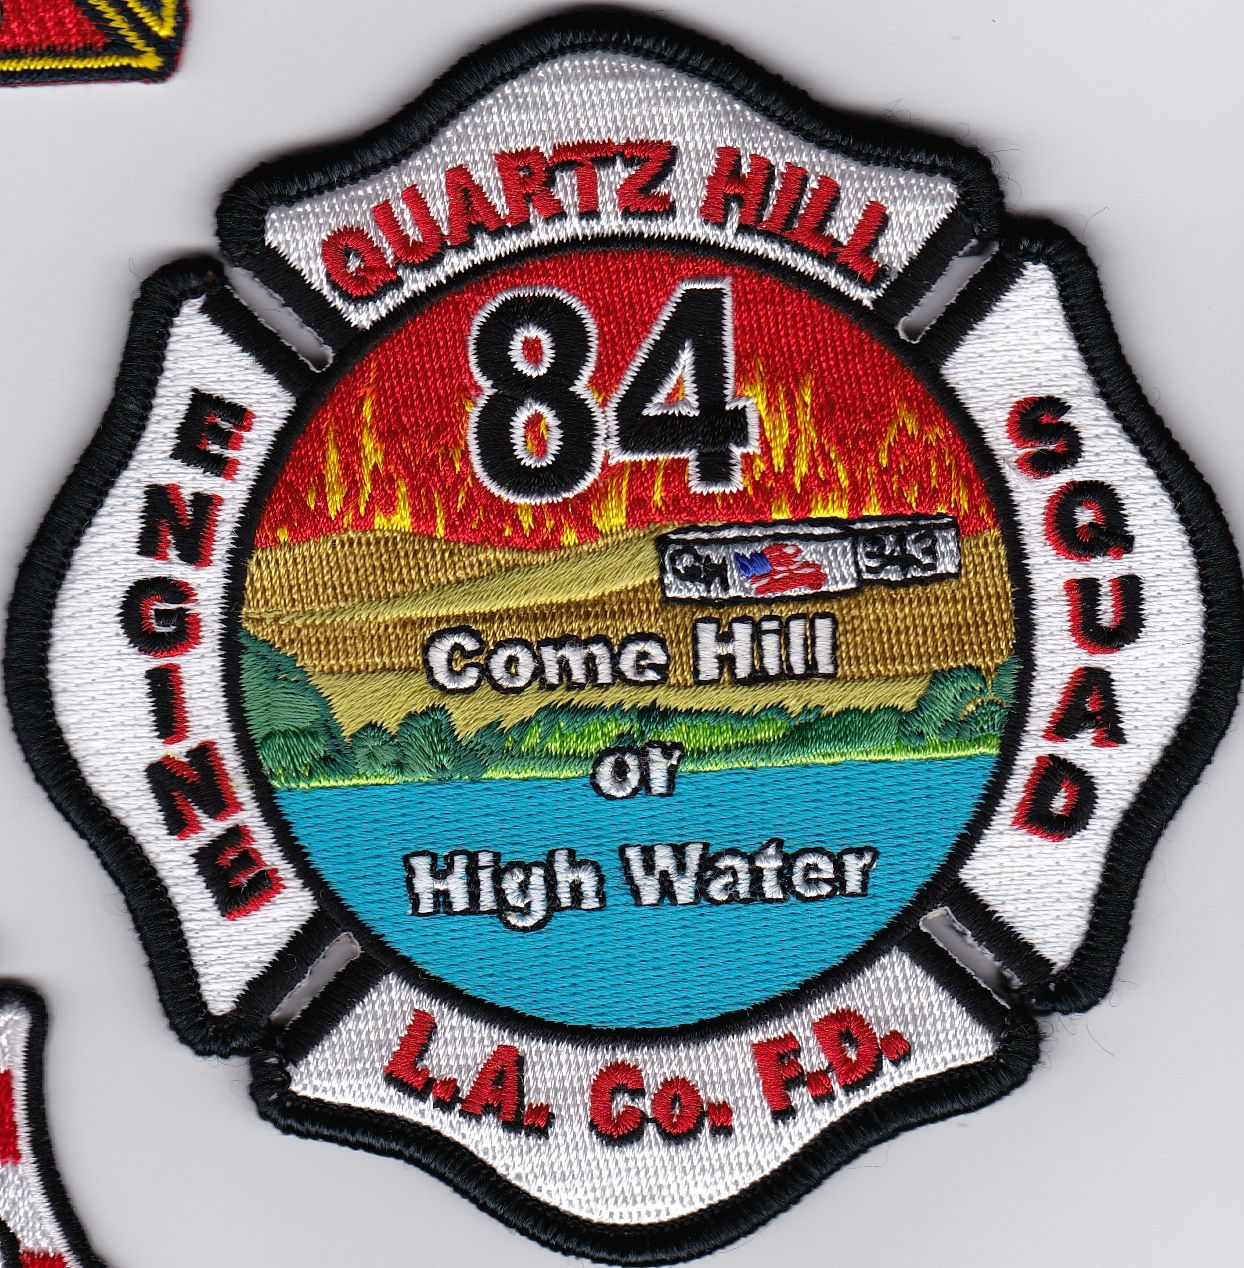 Los Angeles County Fire Department Station 84 Current Fire Department Fire Service Ems Patch